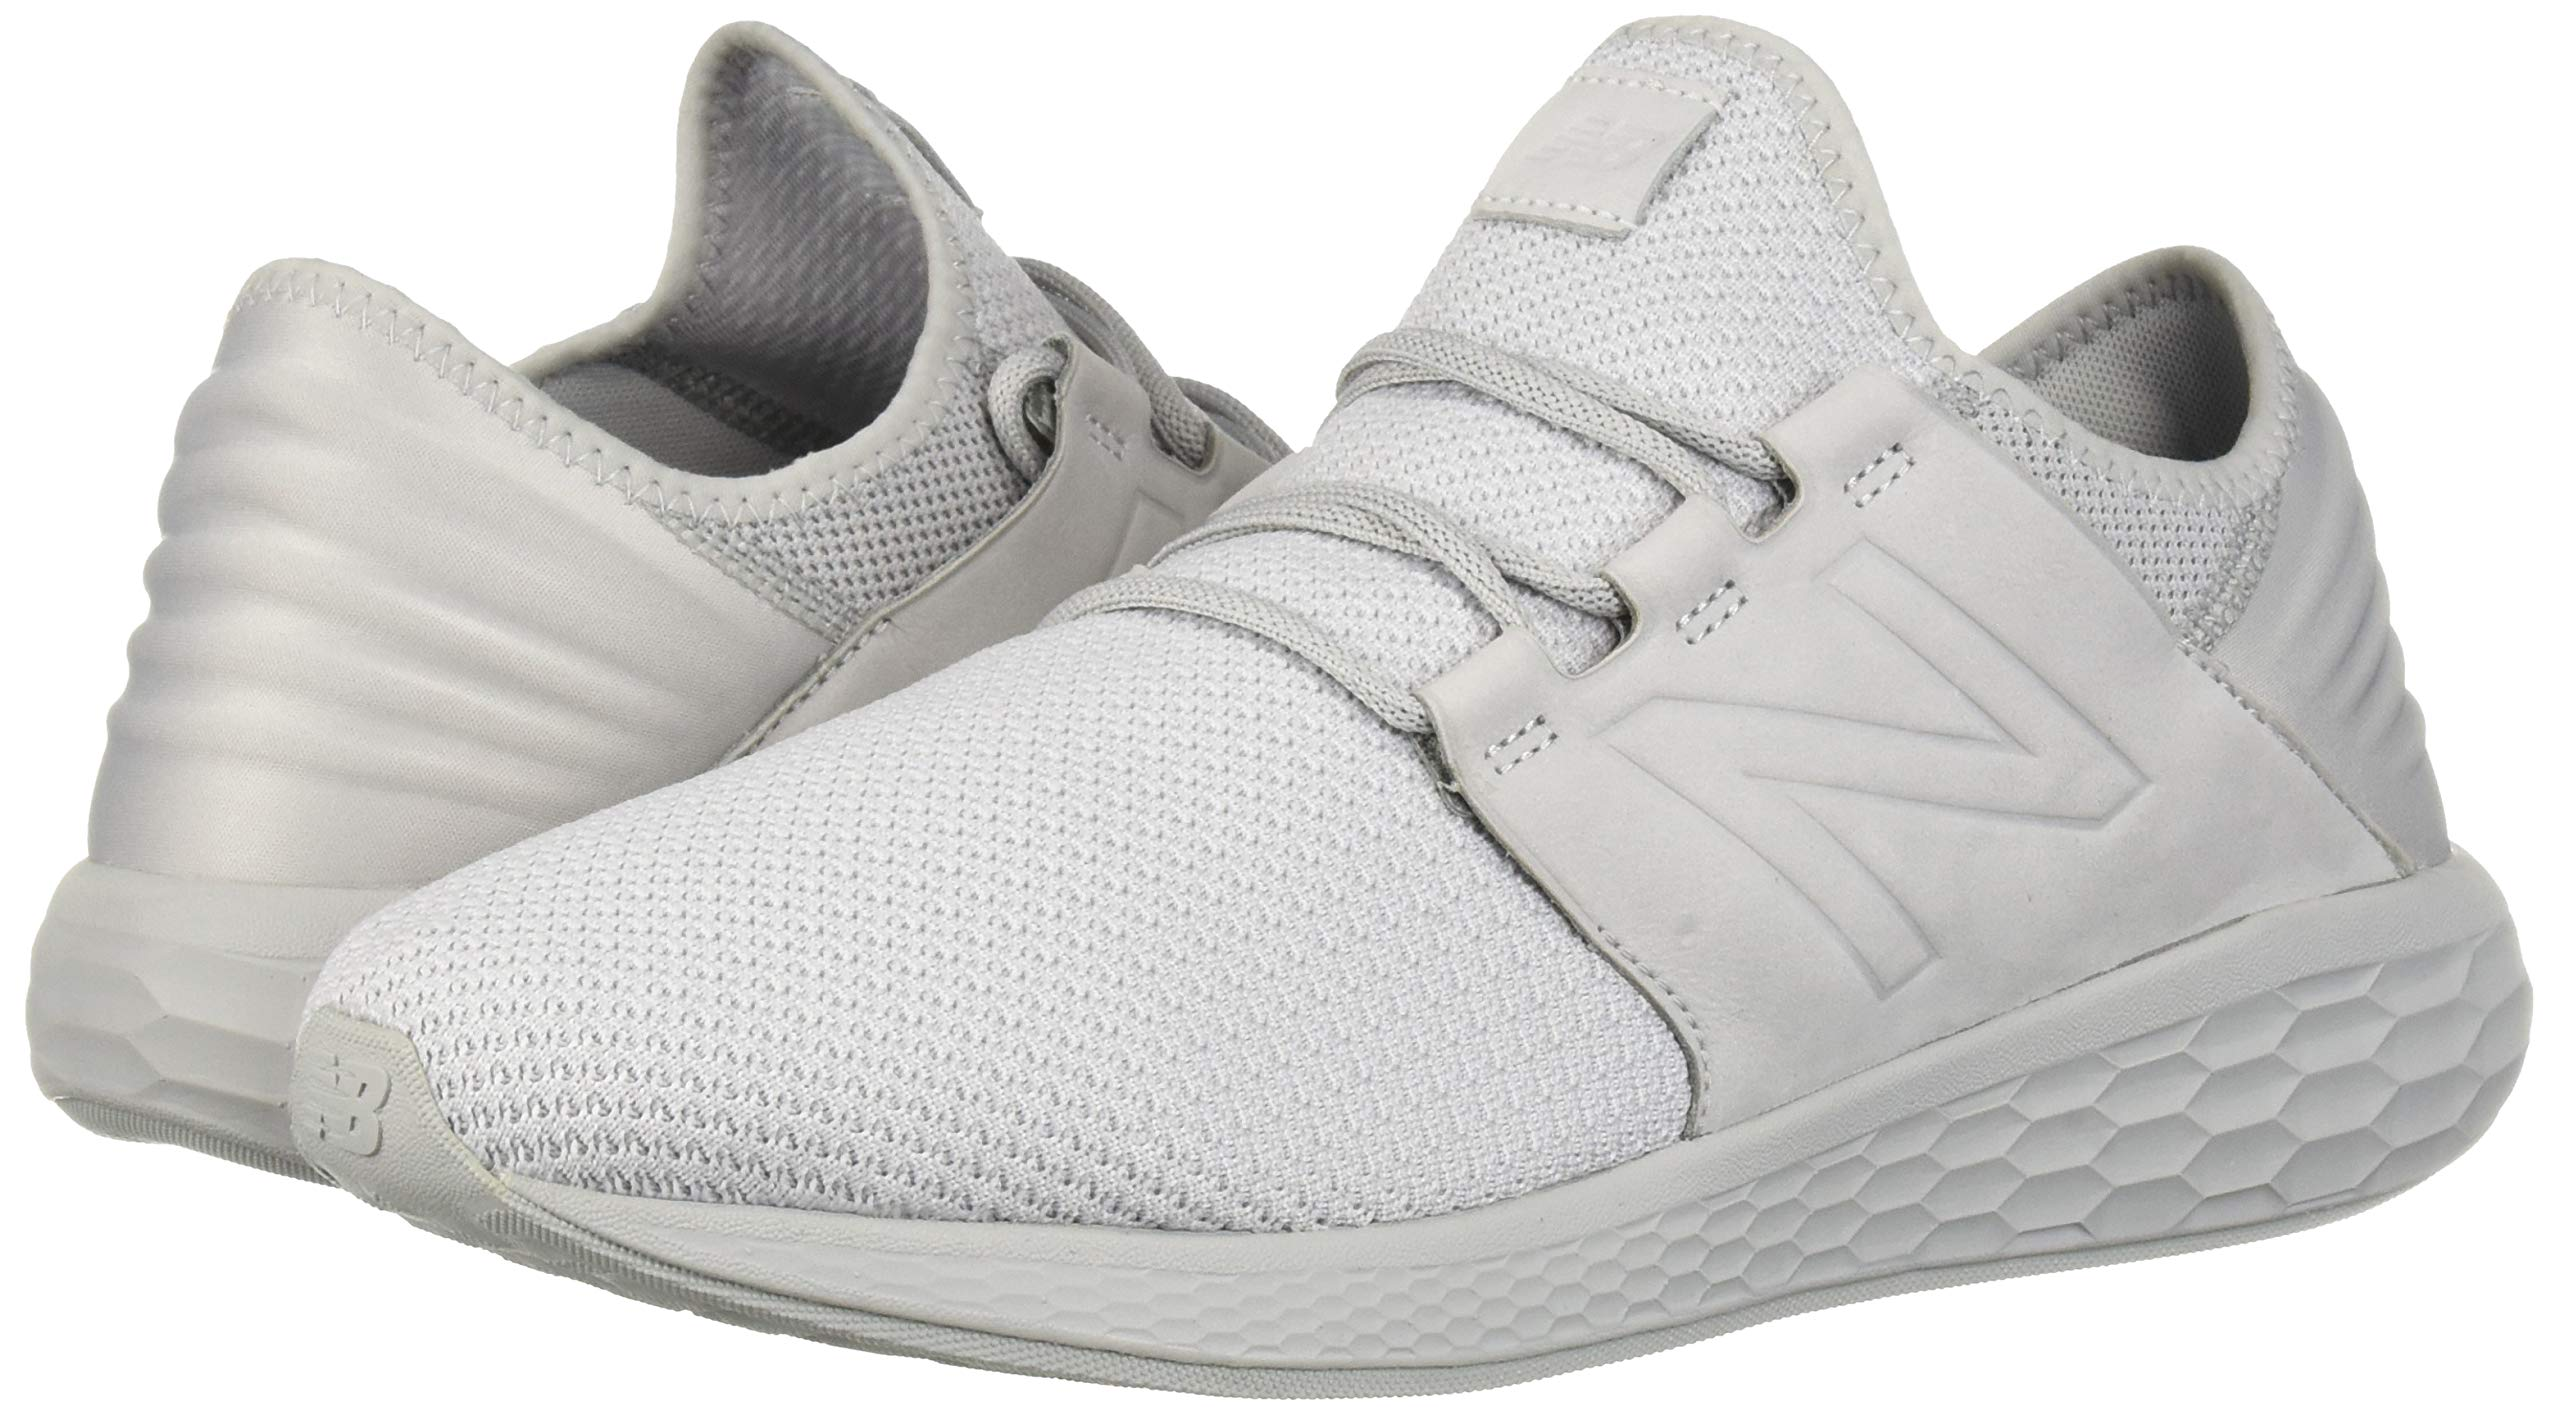 New Balance Men's Cruz V2 Fresh Foam Running Shoe, arctic fox/white/nubuck, 7 D US by New Balance (Image #6)